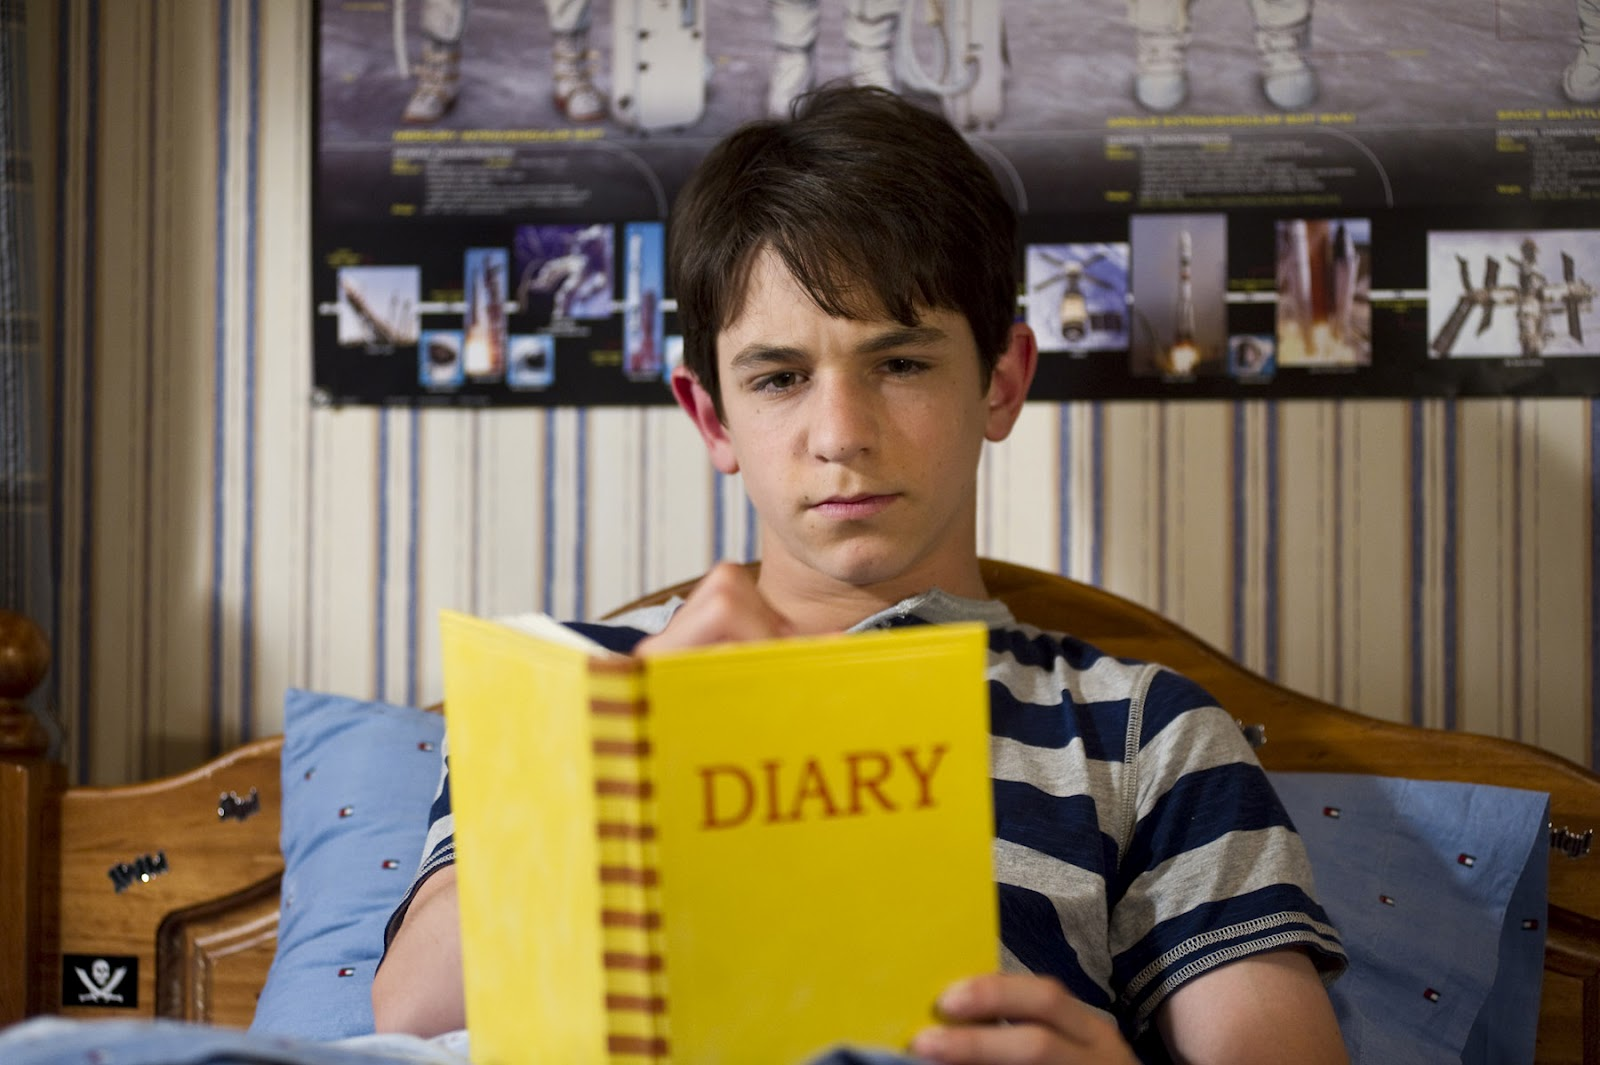 Zachary+Gordon+in+DIARY+WIMPY+3 - Do you have a diary? - Question and Answer